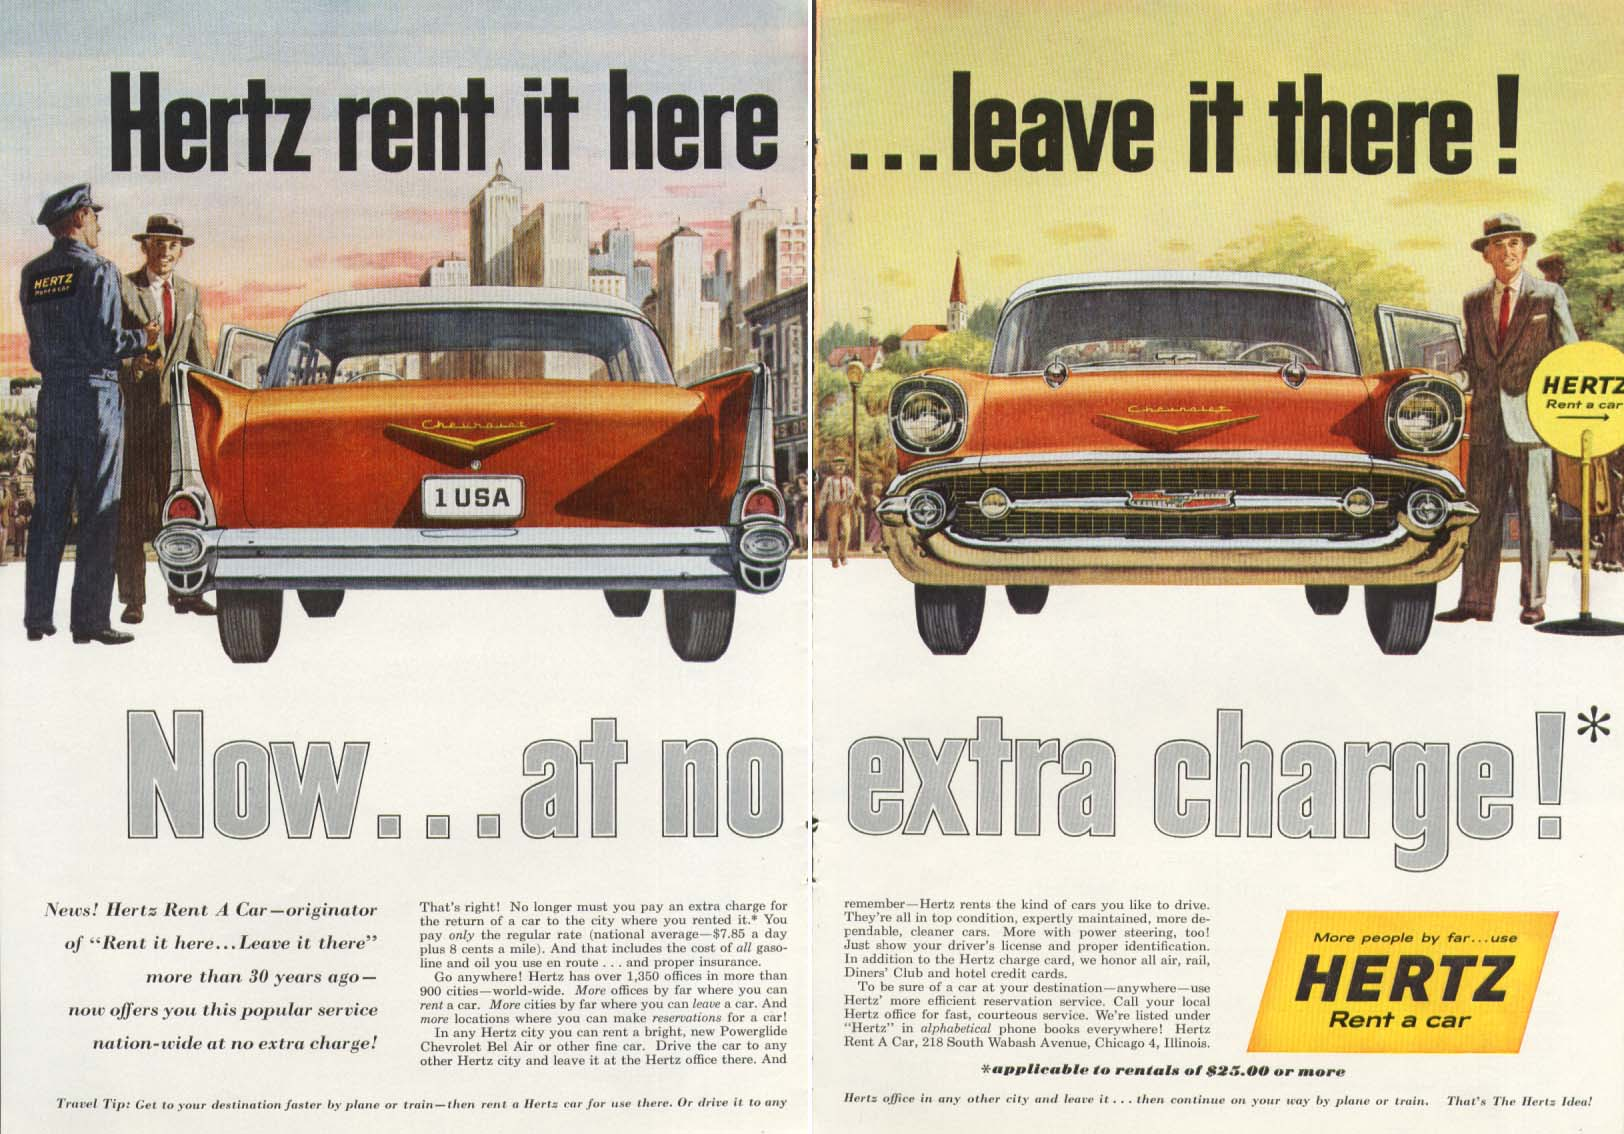 Chevrolet Bel Air Hertz rent here leave there ad 1957